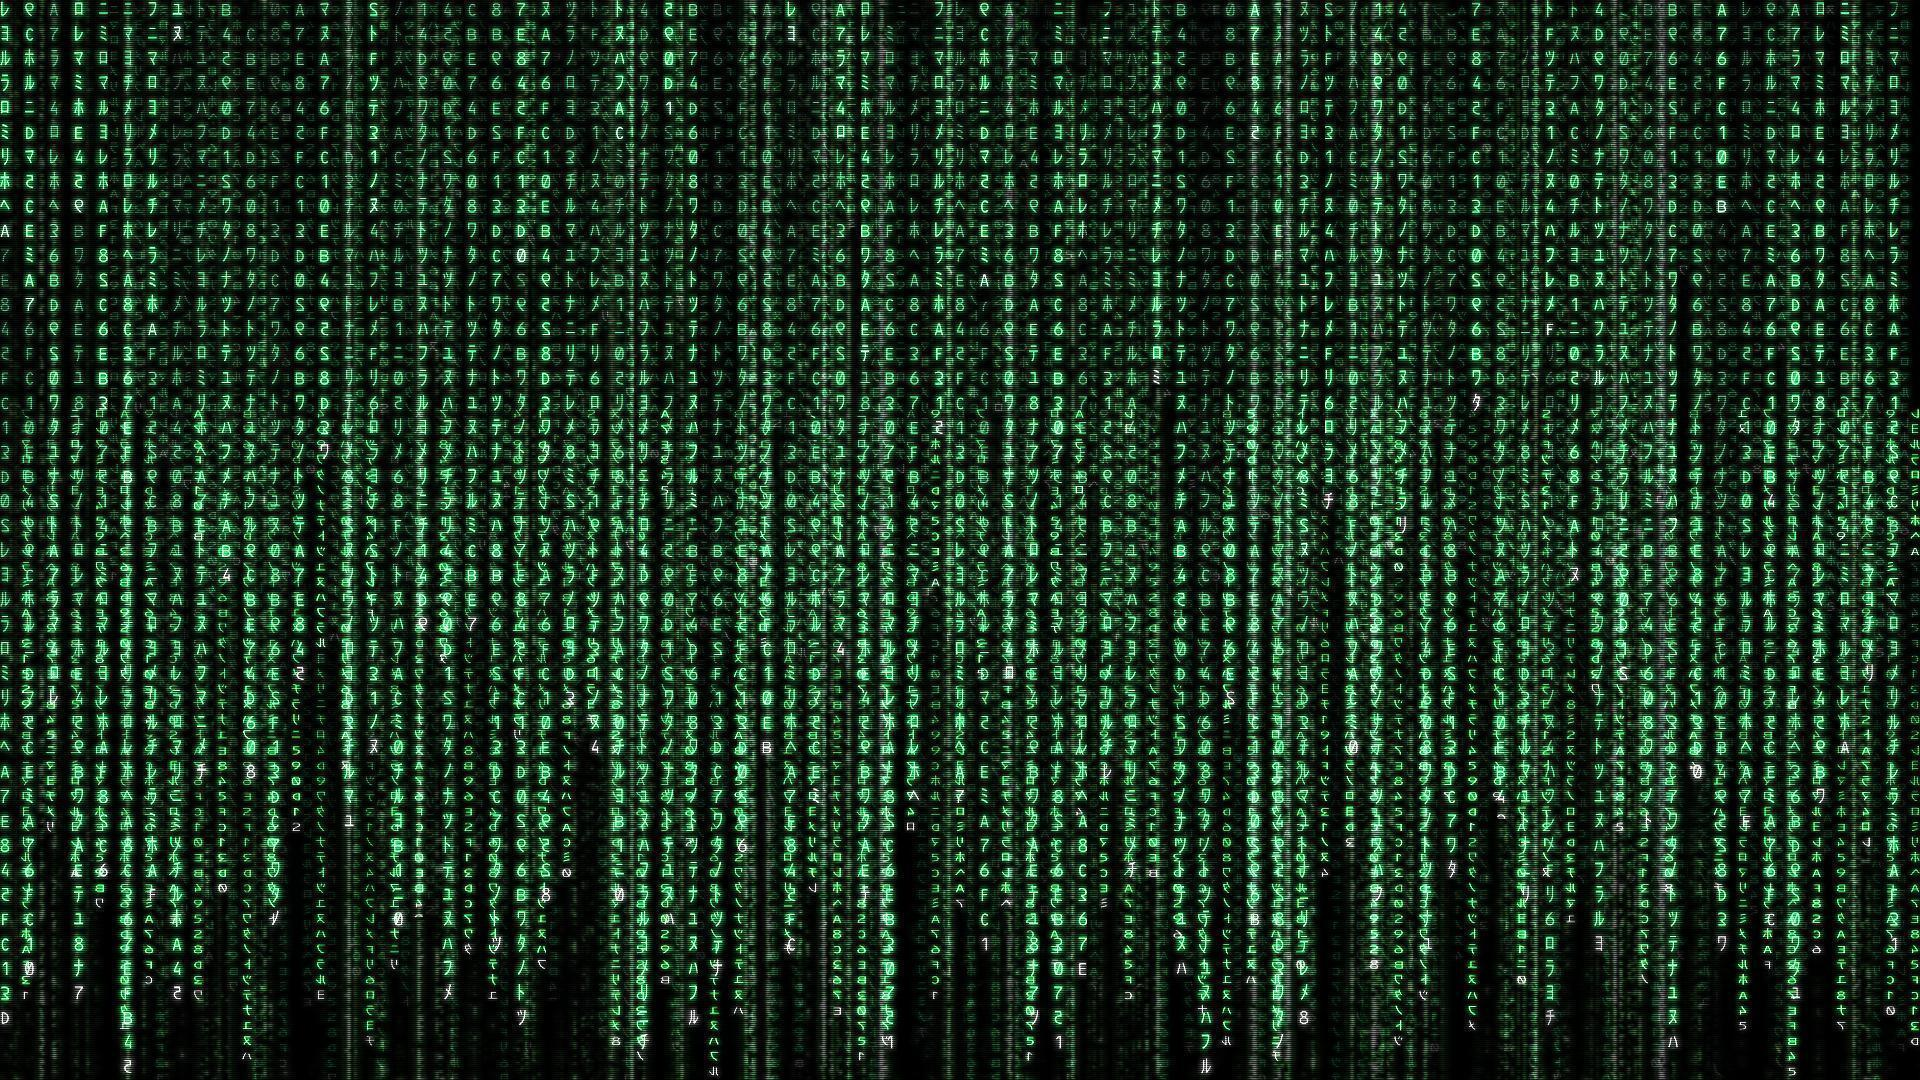 Movie the matrix Wallpaper 1920x1080 | Hot HD Wallpaper